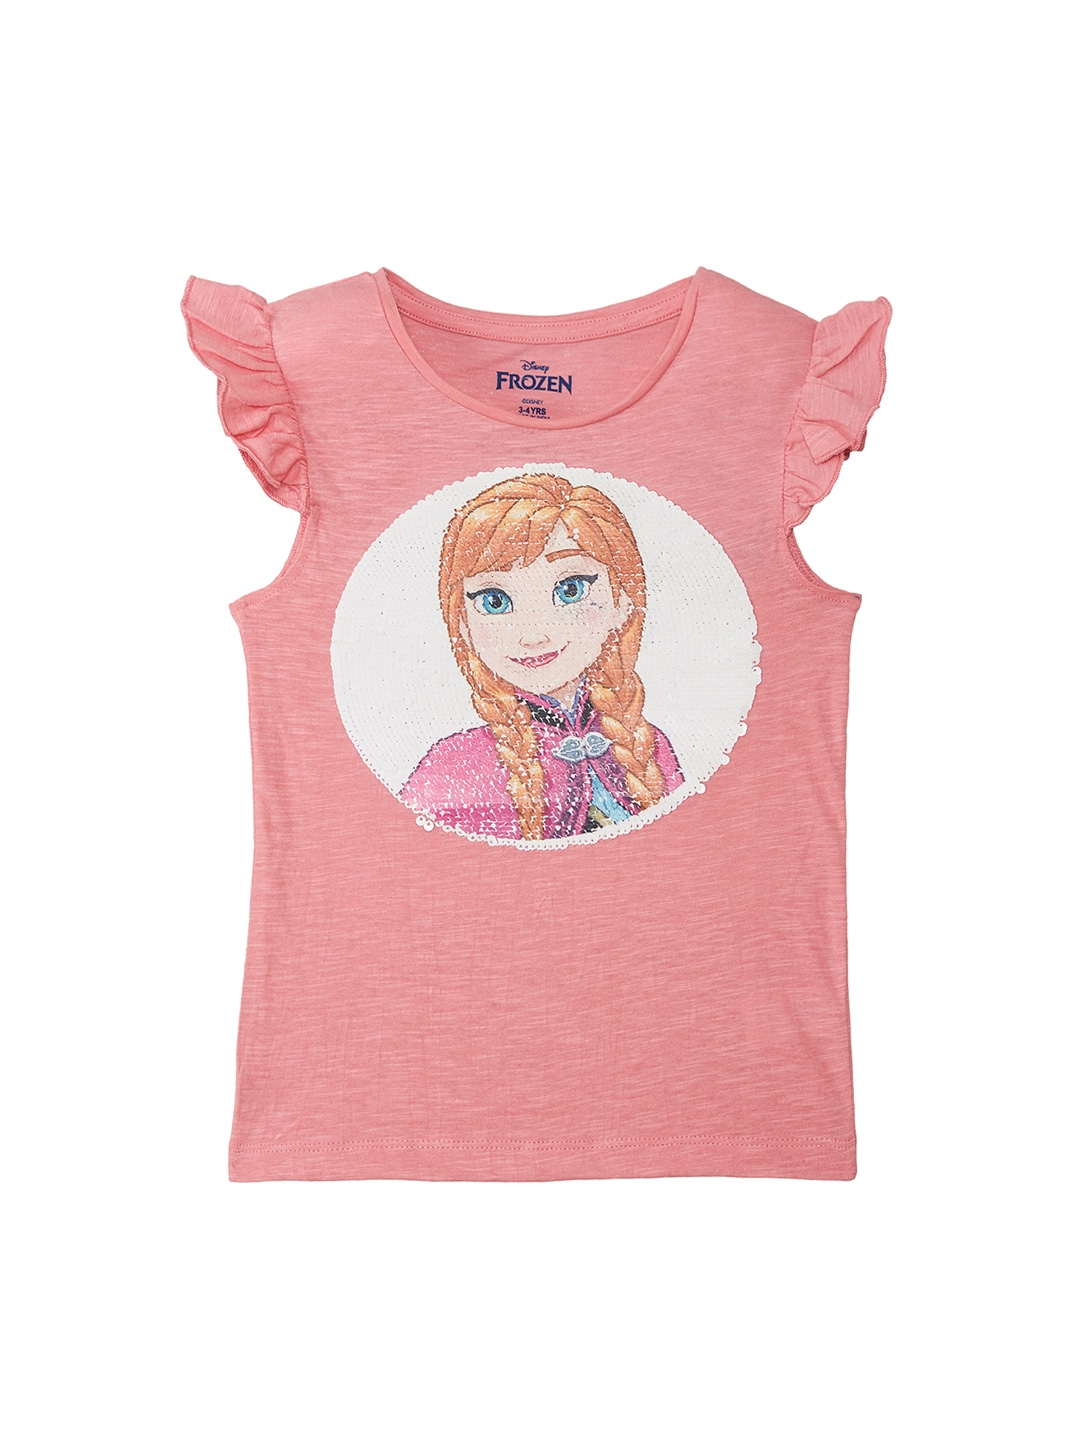 Puma For Kids - Buy Puma For Kids online in India 9fab572e02